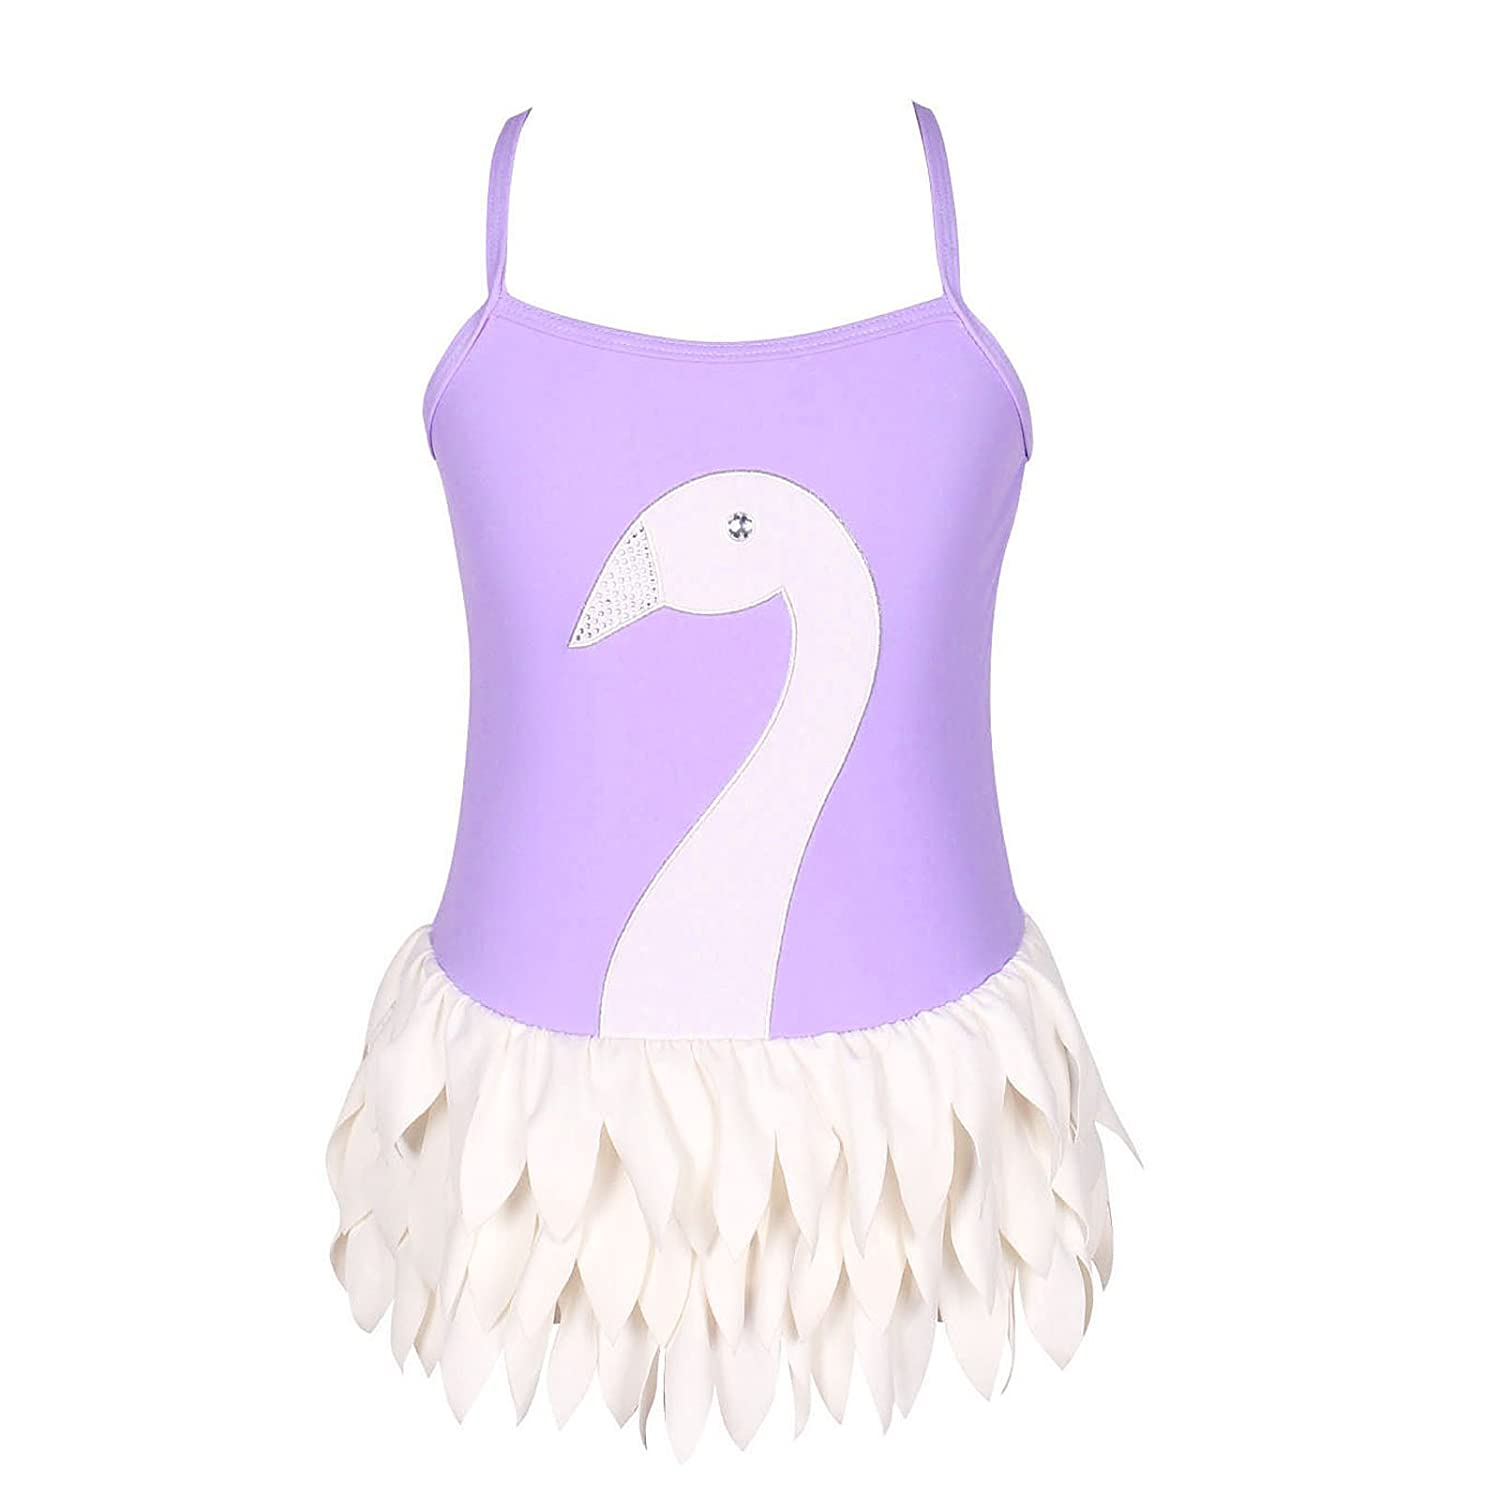 qyqkfly Girls Swan Adjustable Strap 3Y-12Y One Piece Ballet Swimsuit